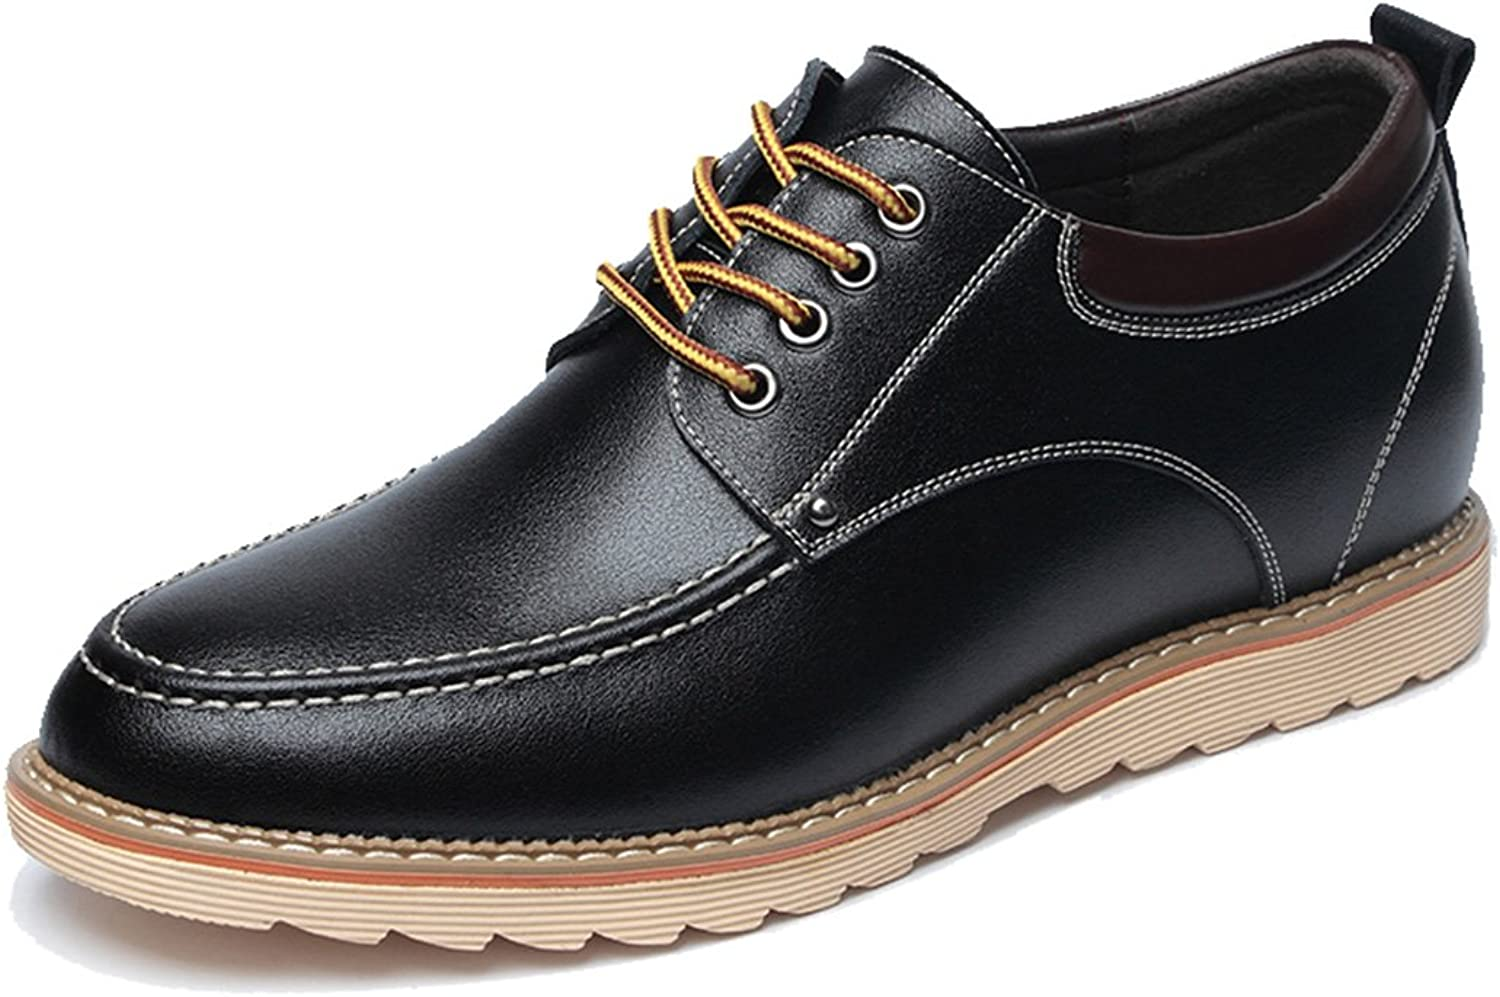 Seaoeey Men's Business Casual shoes Increased Leather shoes Sport Oxford Work Walking